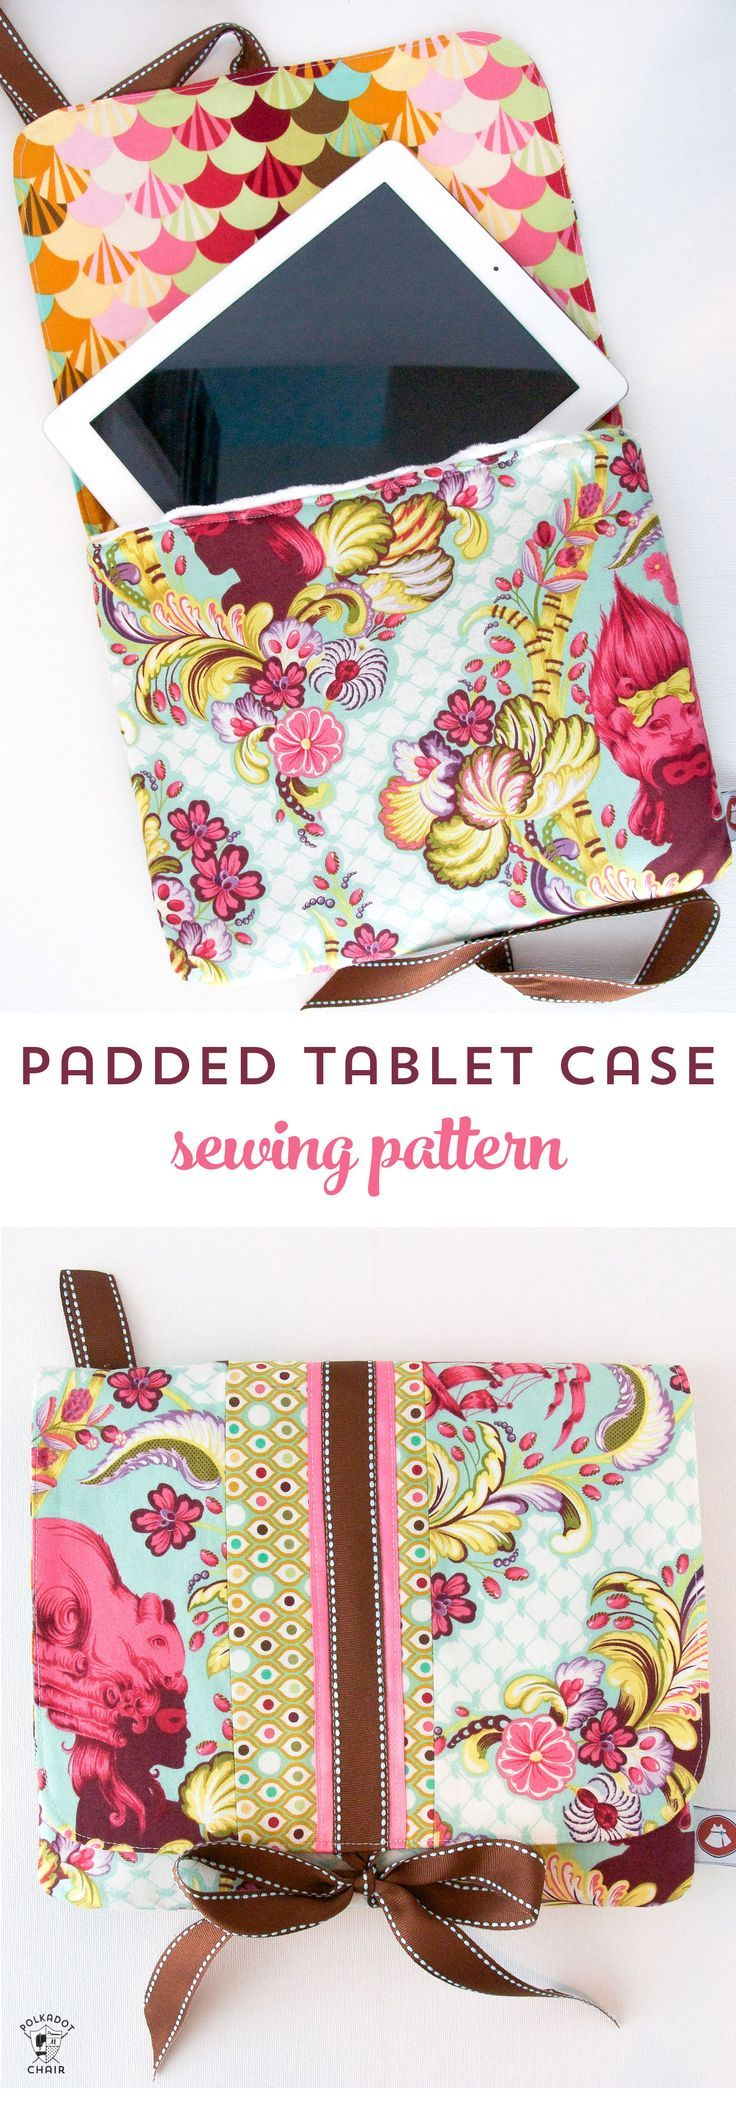 Tutorial for a padded ipad or tablet case. A free ipad case sewing pattern available on http://polkadotchair.com